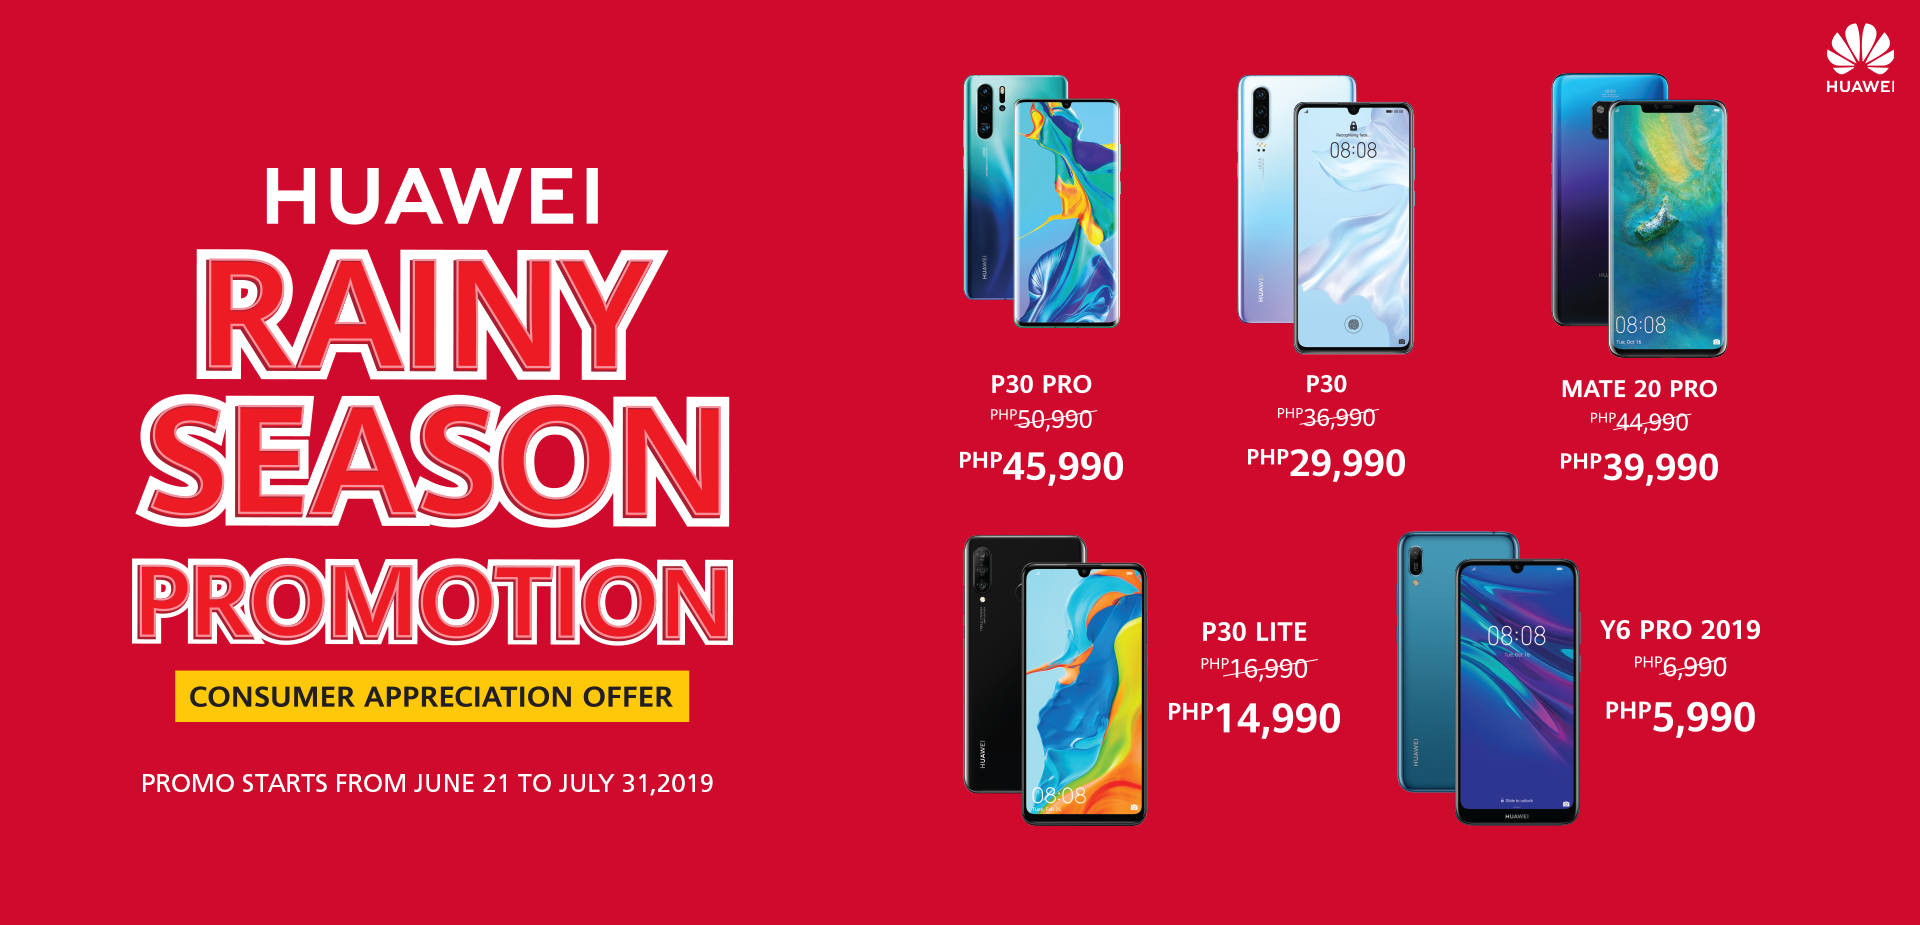 Huawei Rainy Season Promotion